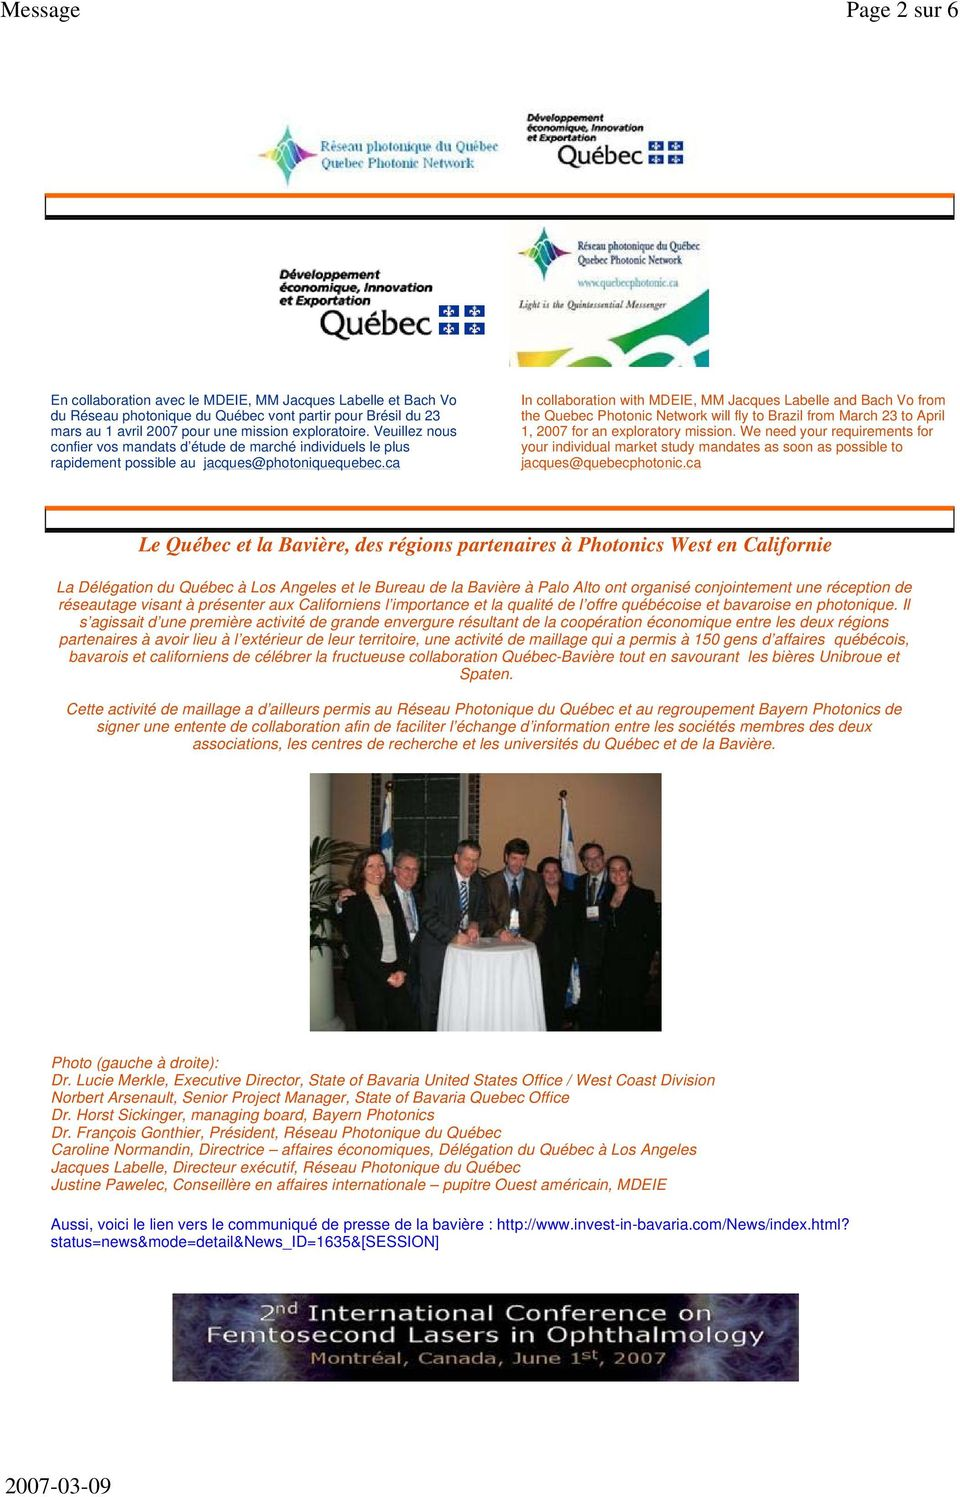 ca In collaboration with MDEIE, MM Jacques Labelle and Bach Vo from the Quebec Photonic Network will fly to Brazil from March 23 to April 1, 2007 for an exploratory mission.